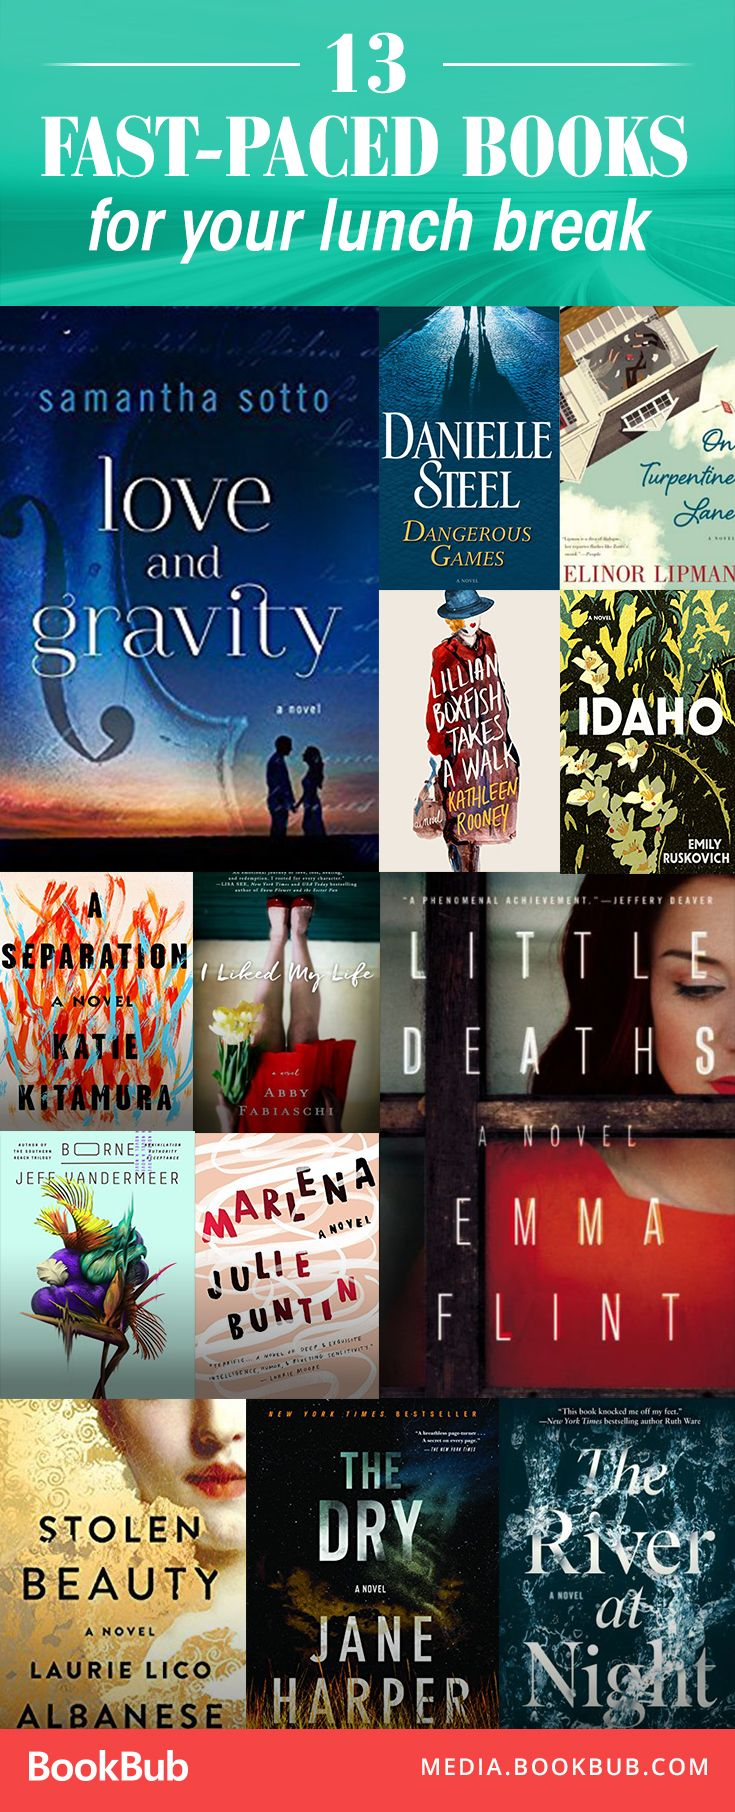 13 Fastpaced Books To Read On Your Lunch Break